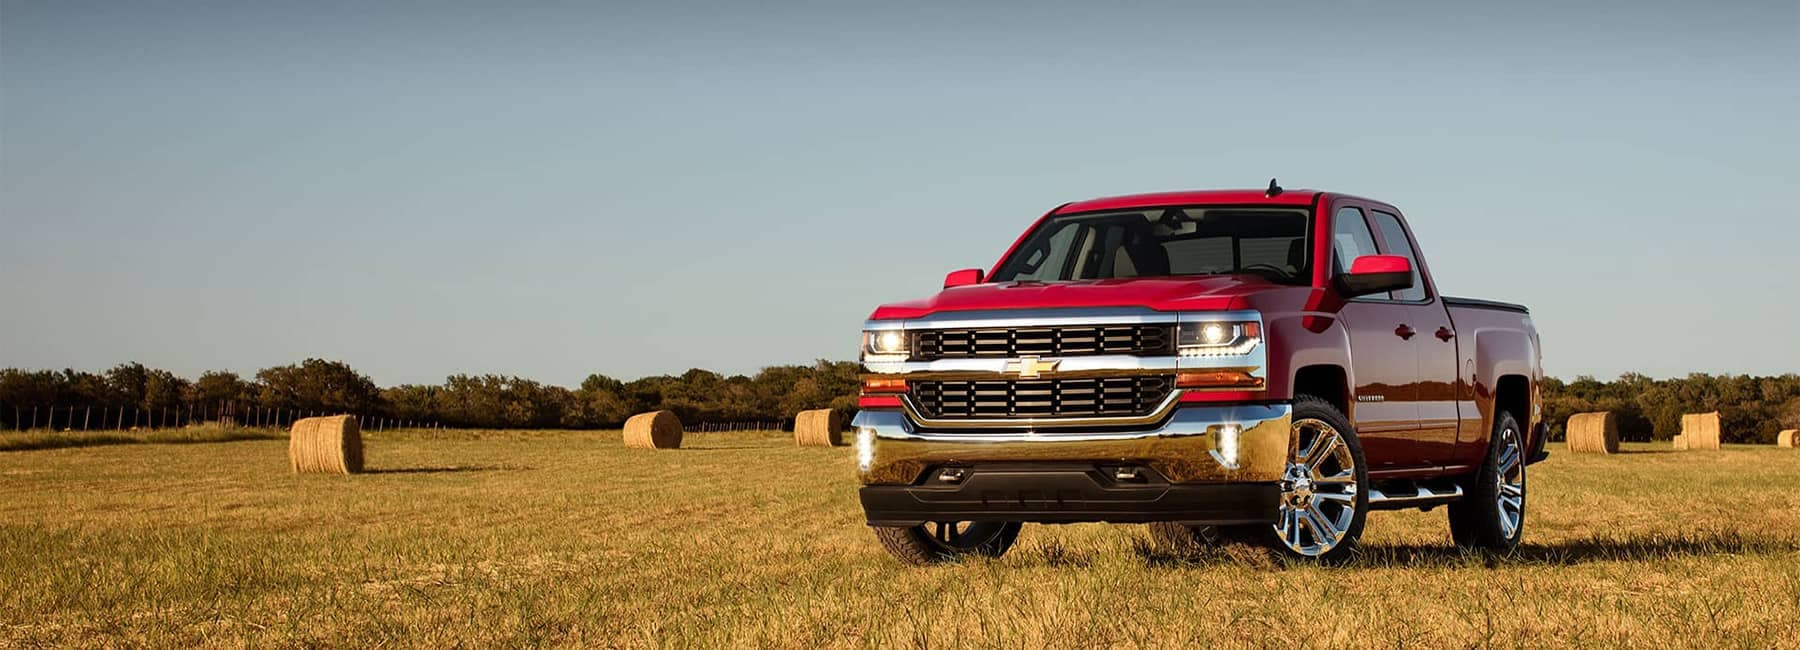 2018 Silverado 1500 Parked in a Field at an angle